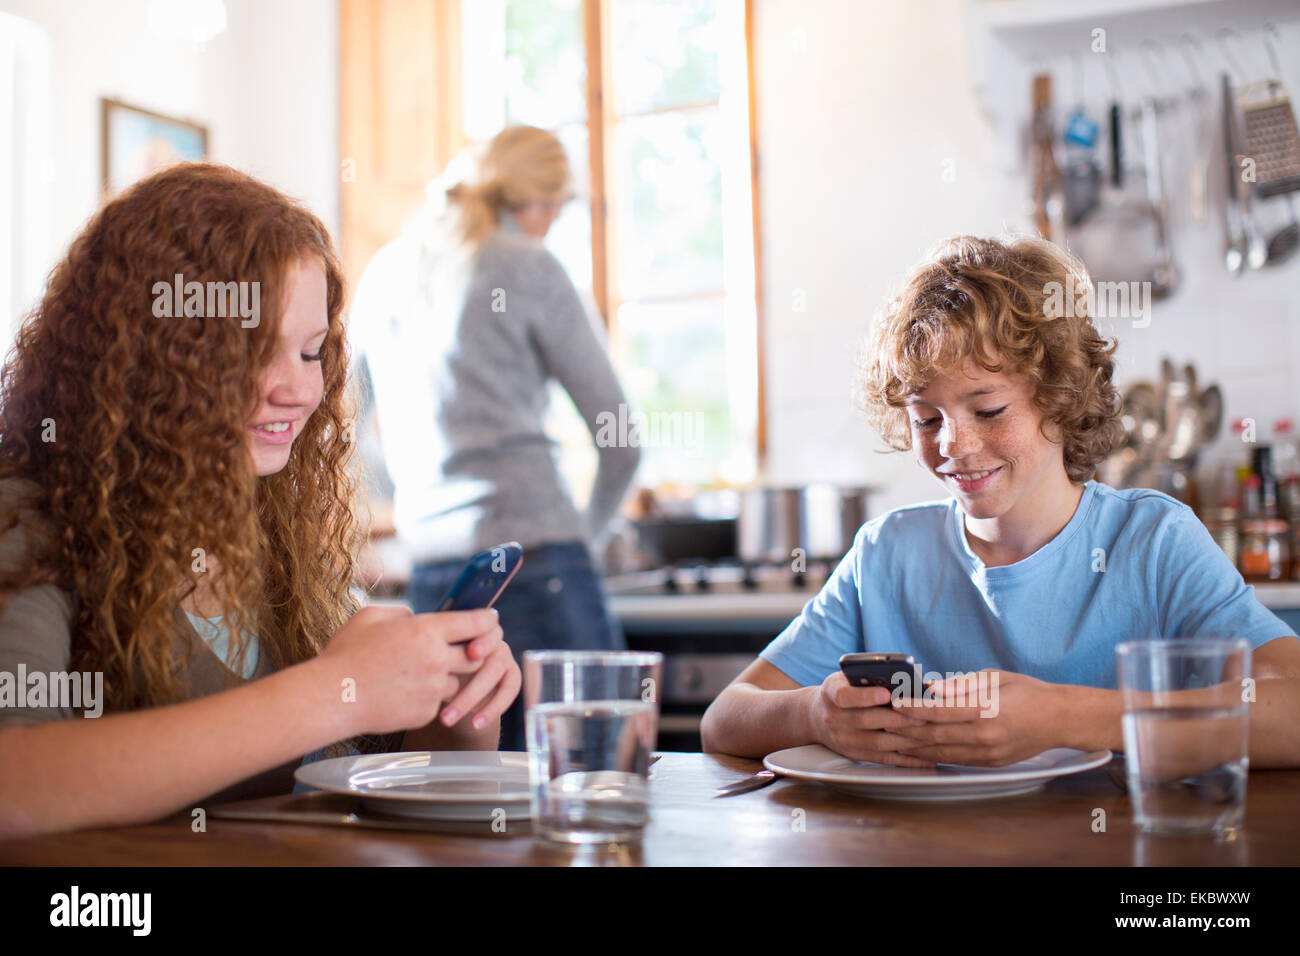 Siblings using smartphone at dining table - Stock Image